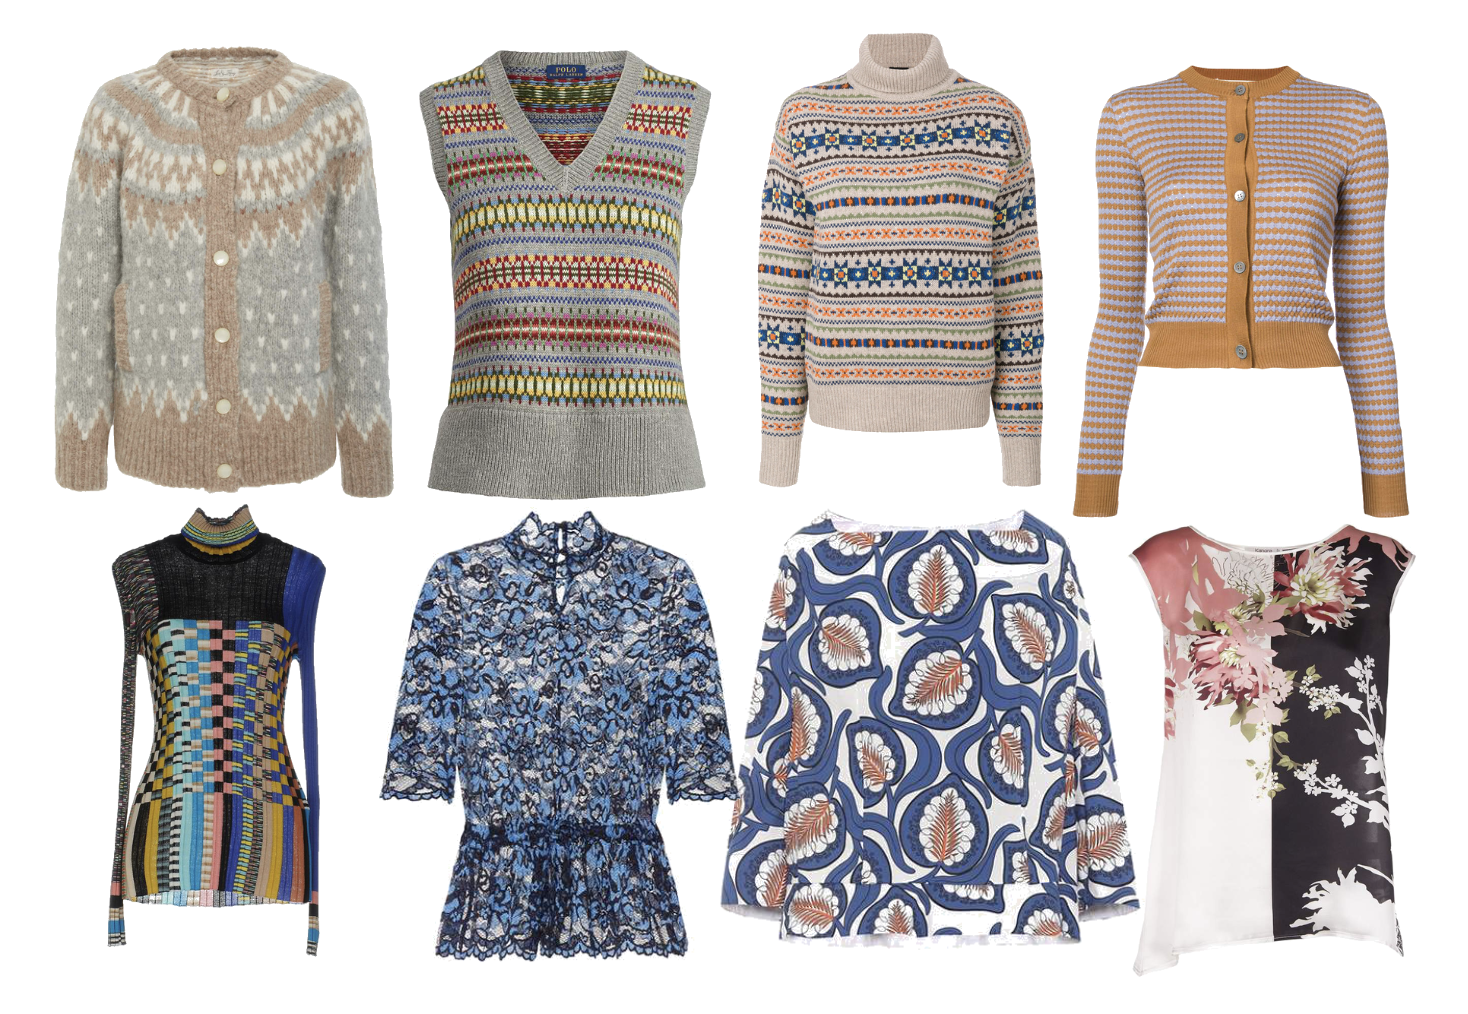 Knits and prints for Soft Autumn